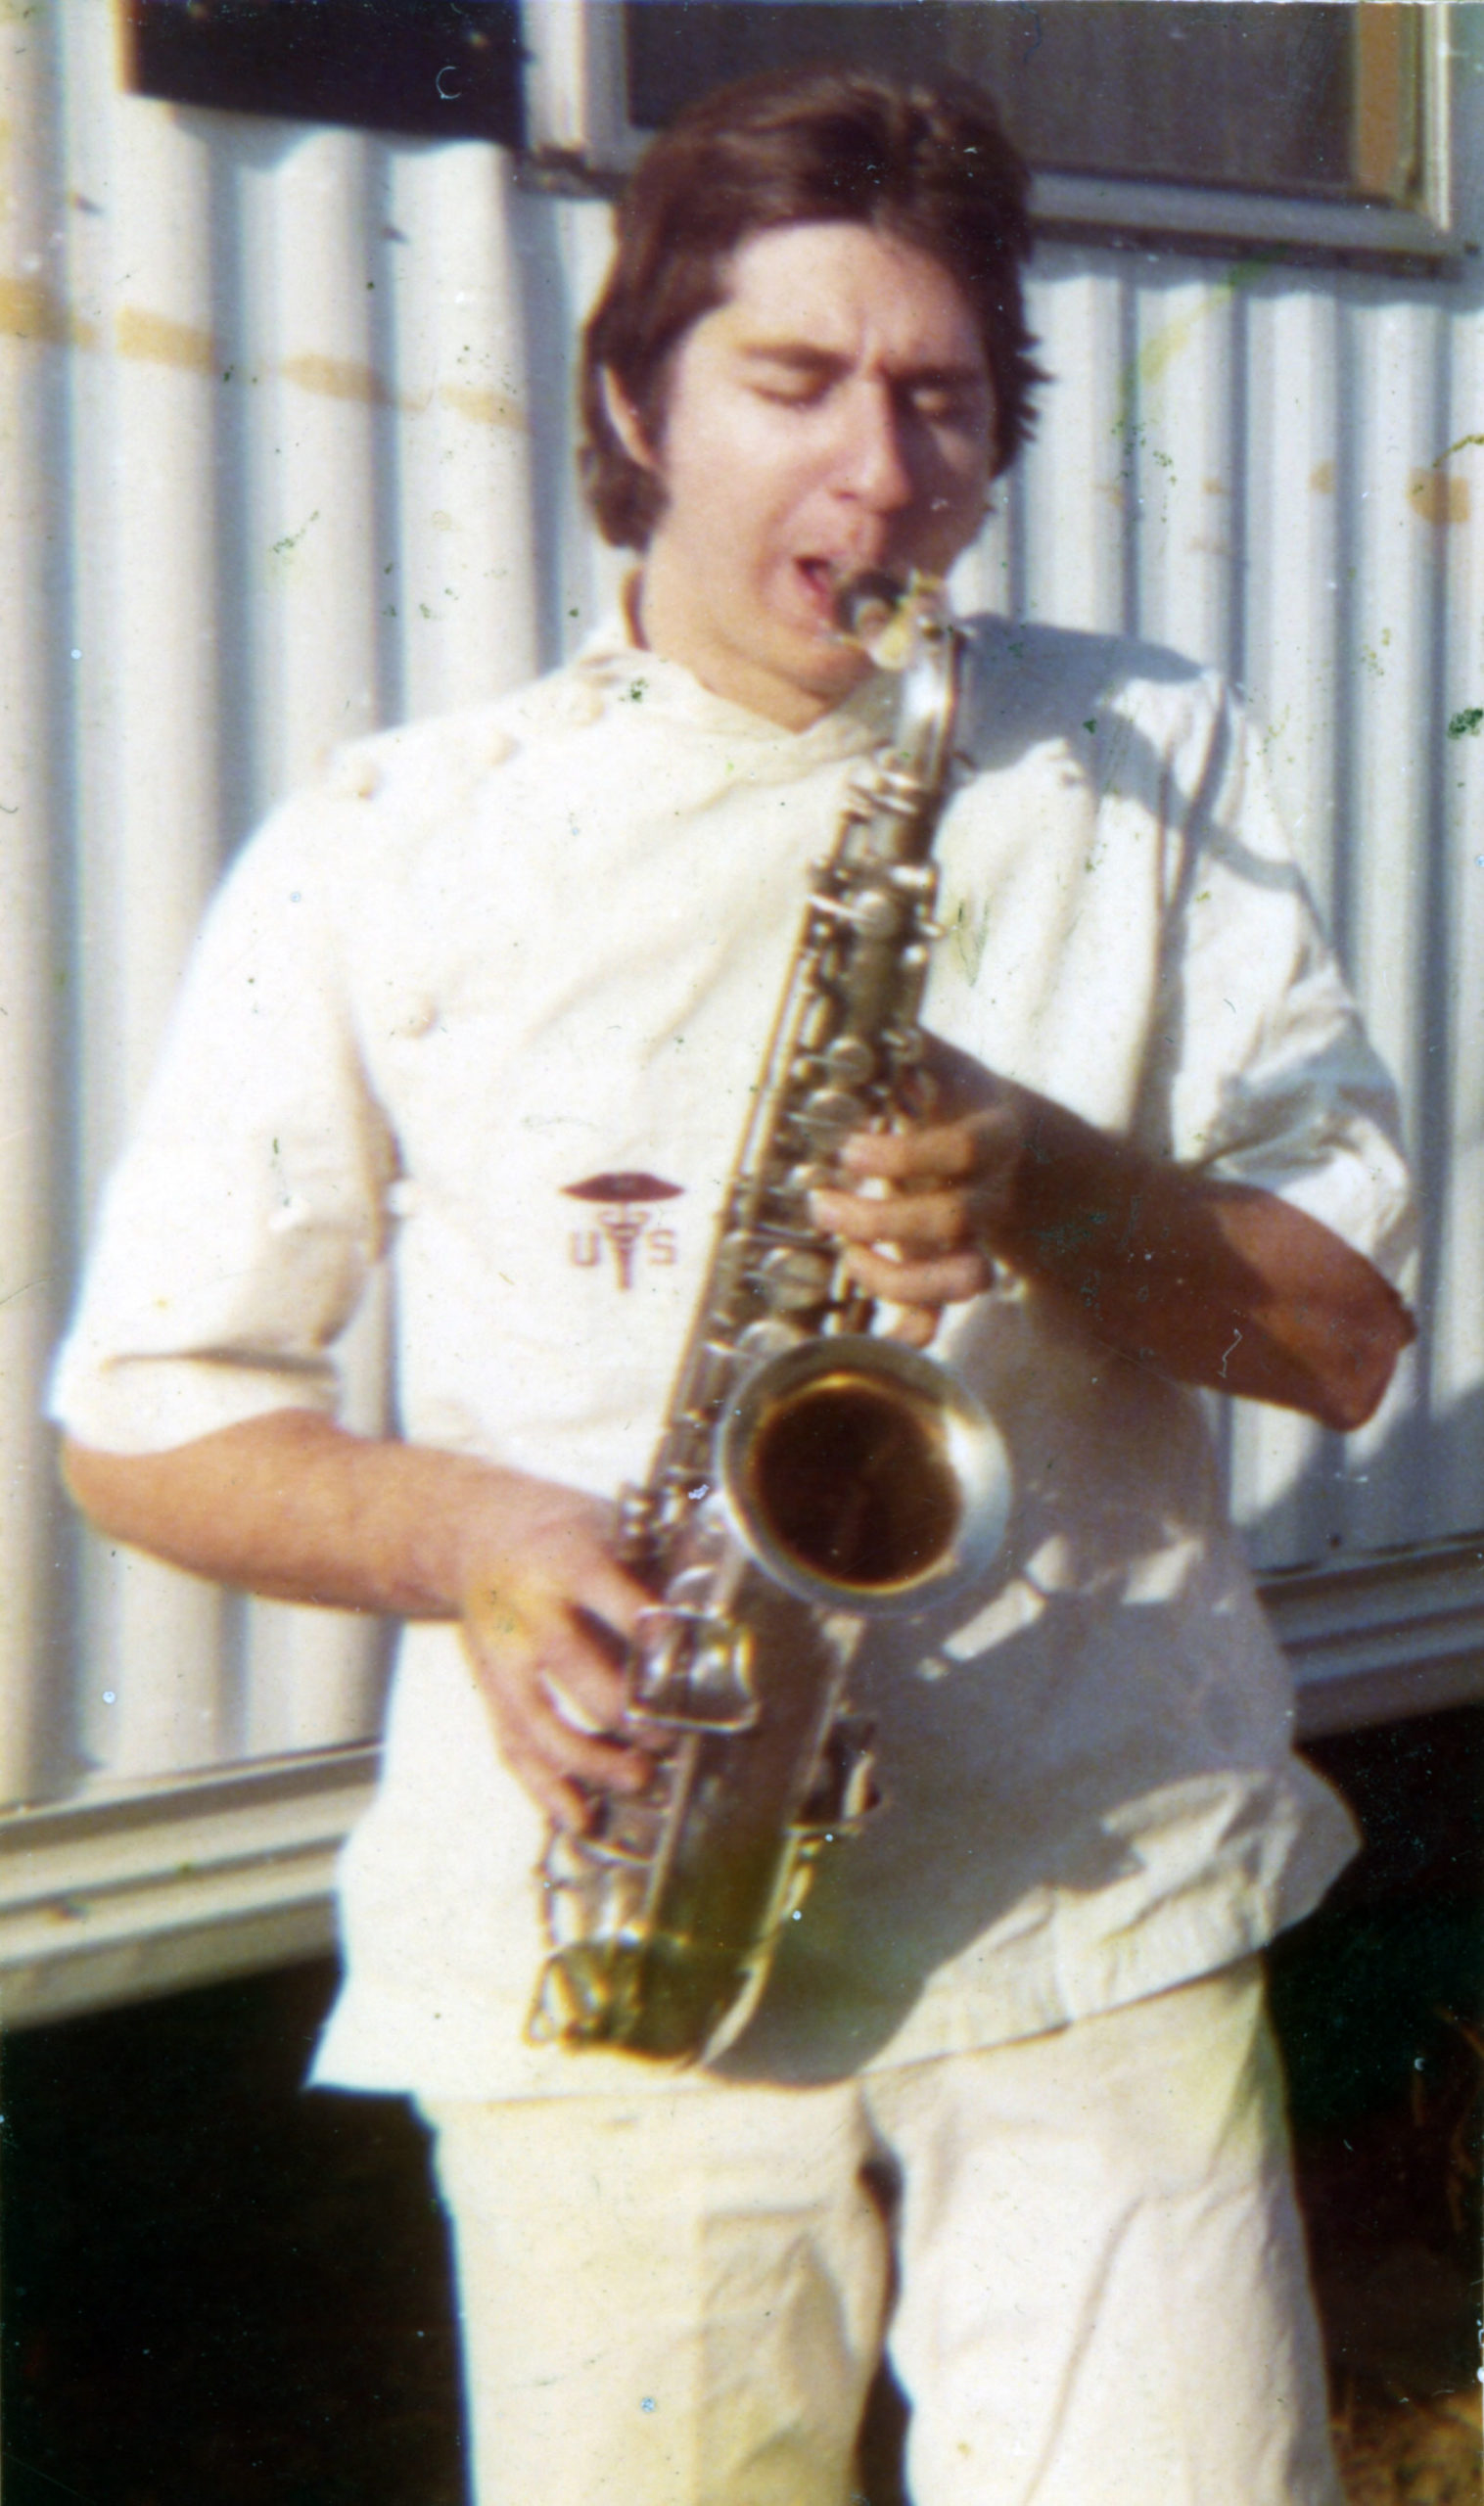 Steve playing sax outside the trailer